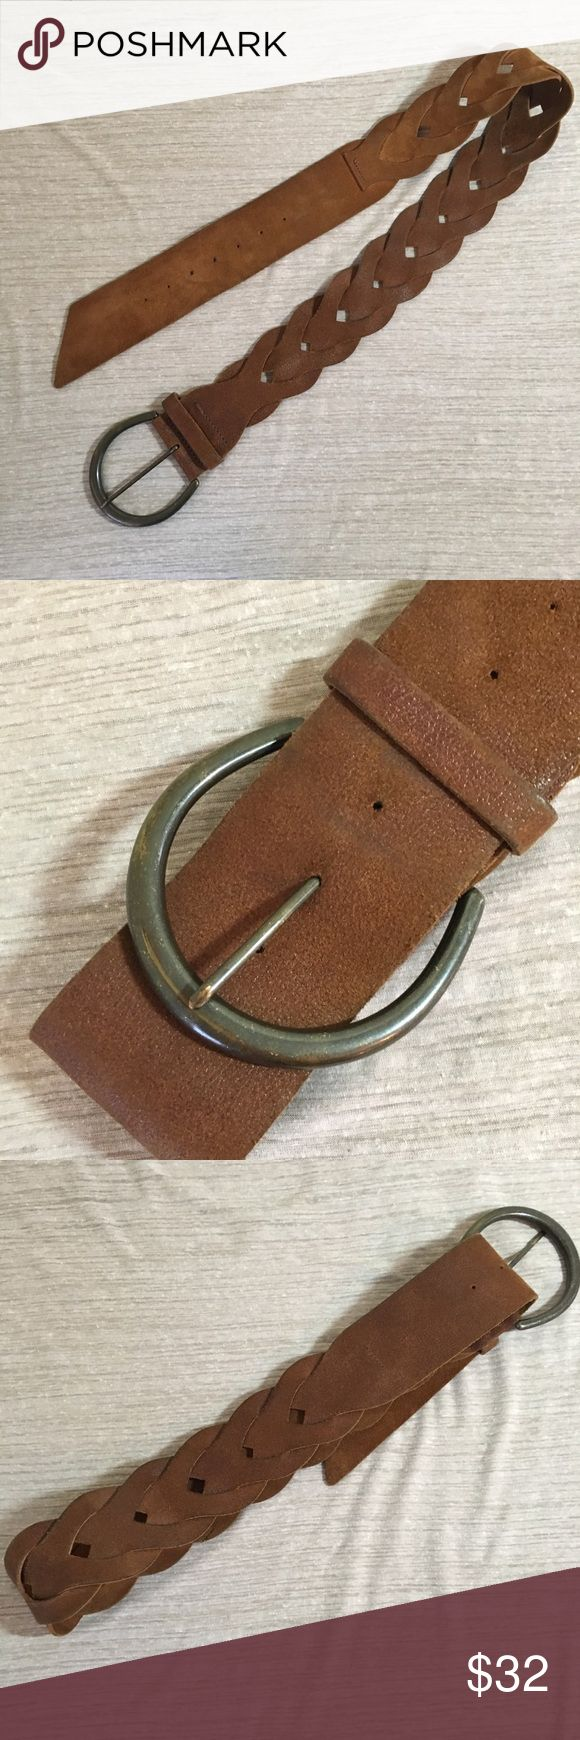 "Soft Boho Brown Leather Woven Belt 2 1/2"" Wide Very soft woven brown leather belt, large metal buckle.  Brand markings are worn - Genuine Leather Size 12-14  Measurements: From start of belt buckle to end of belt: 45"" Leather Length: 41 1/2"" Width: 2 1/2"" Belt Buckle: 3 1/2"" x 4"" Accessories Belts"